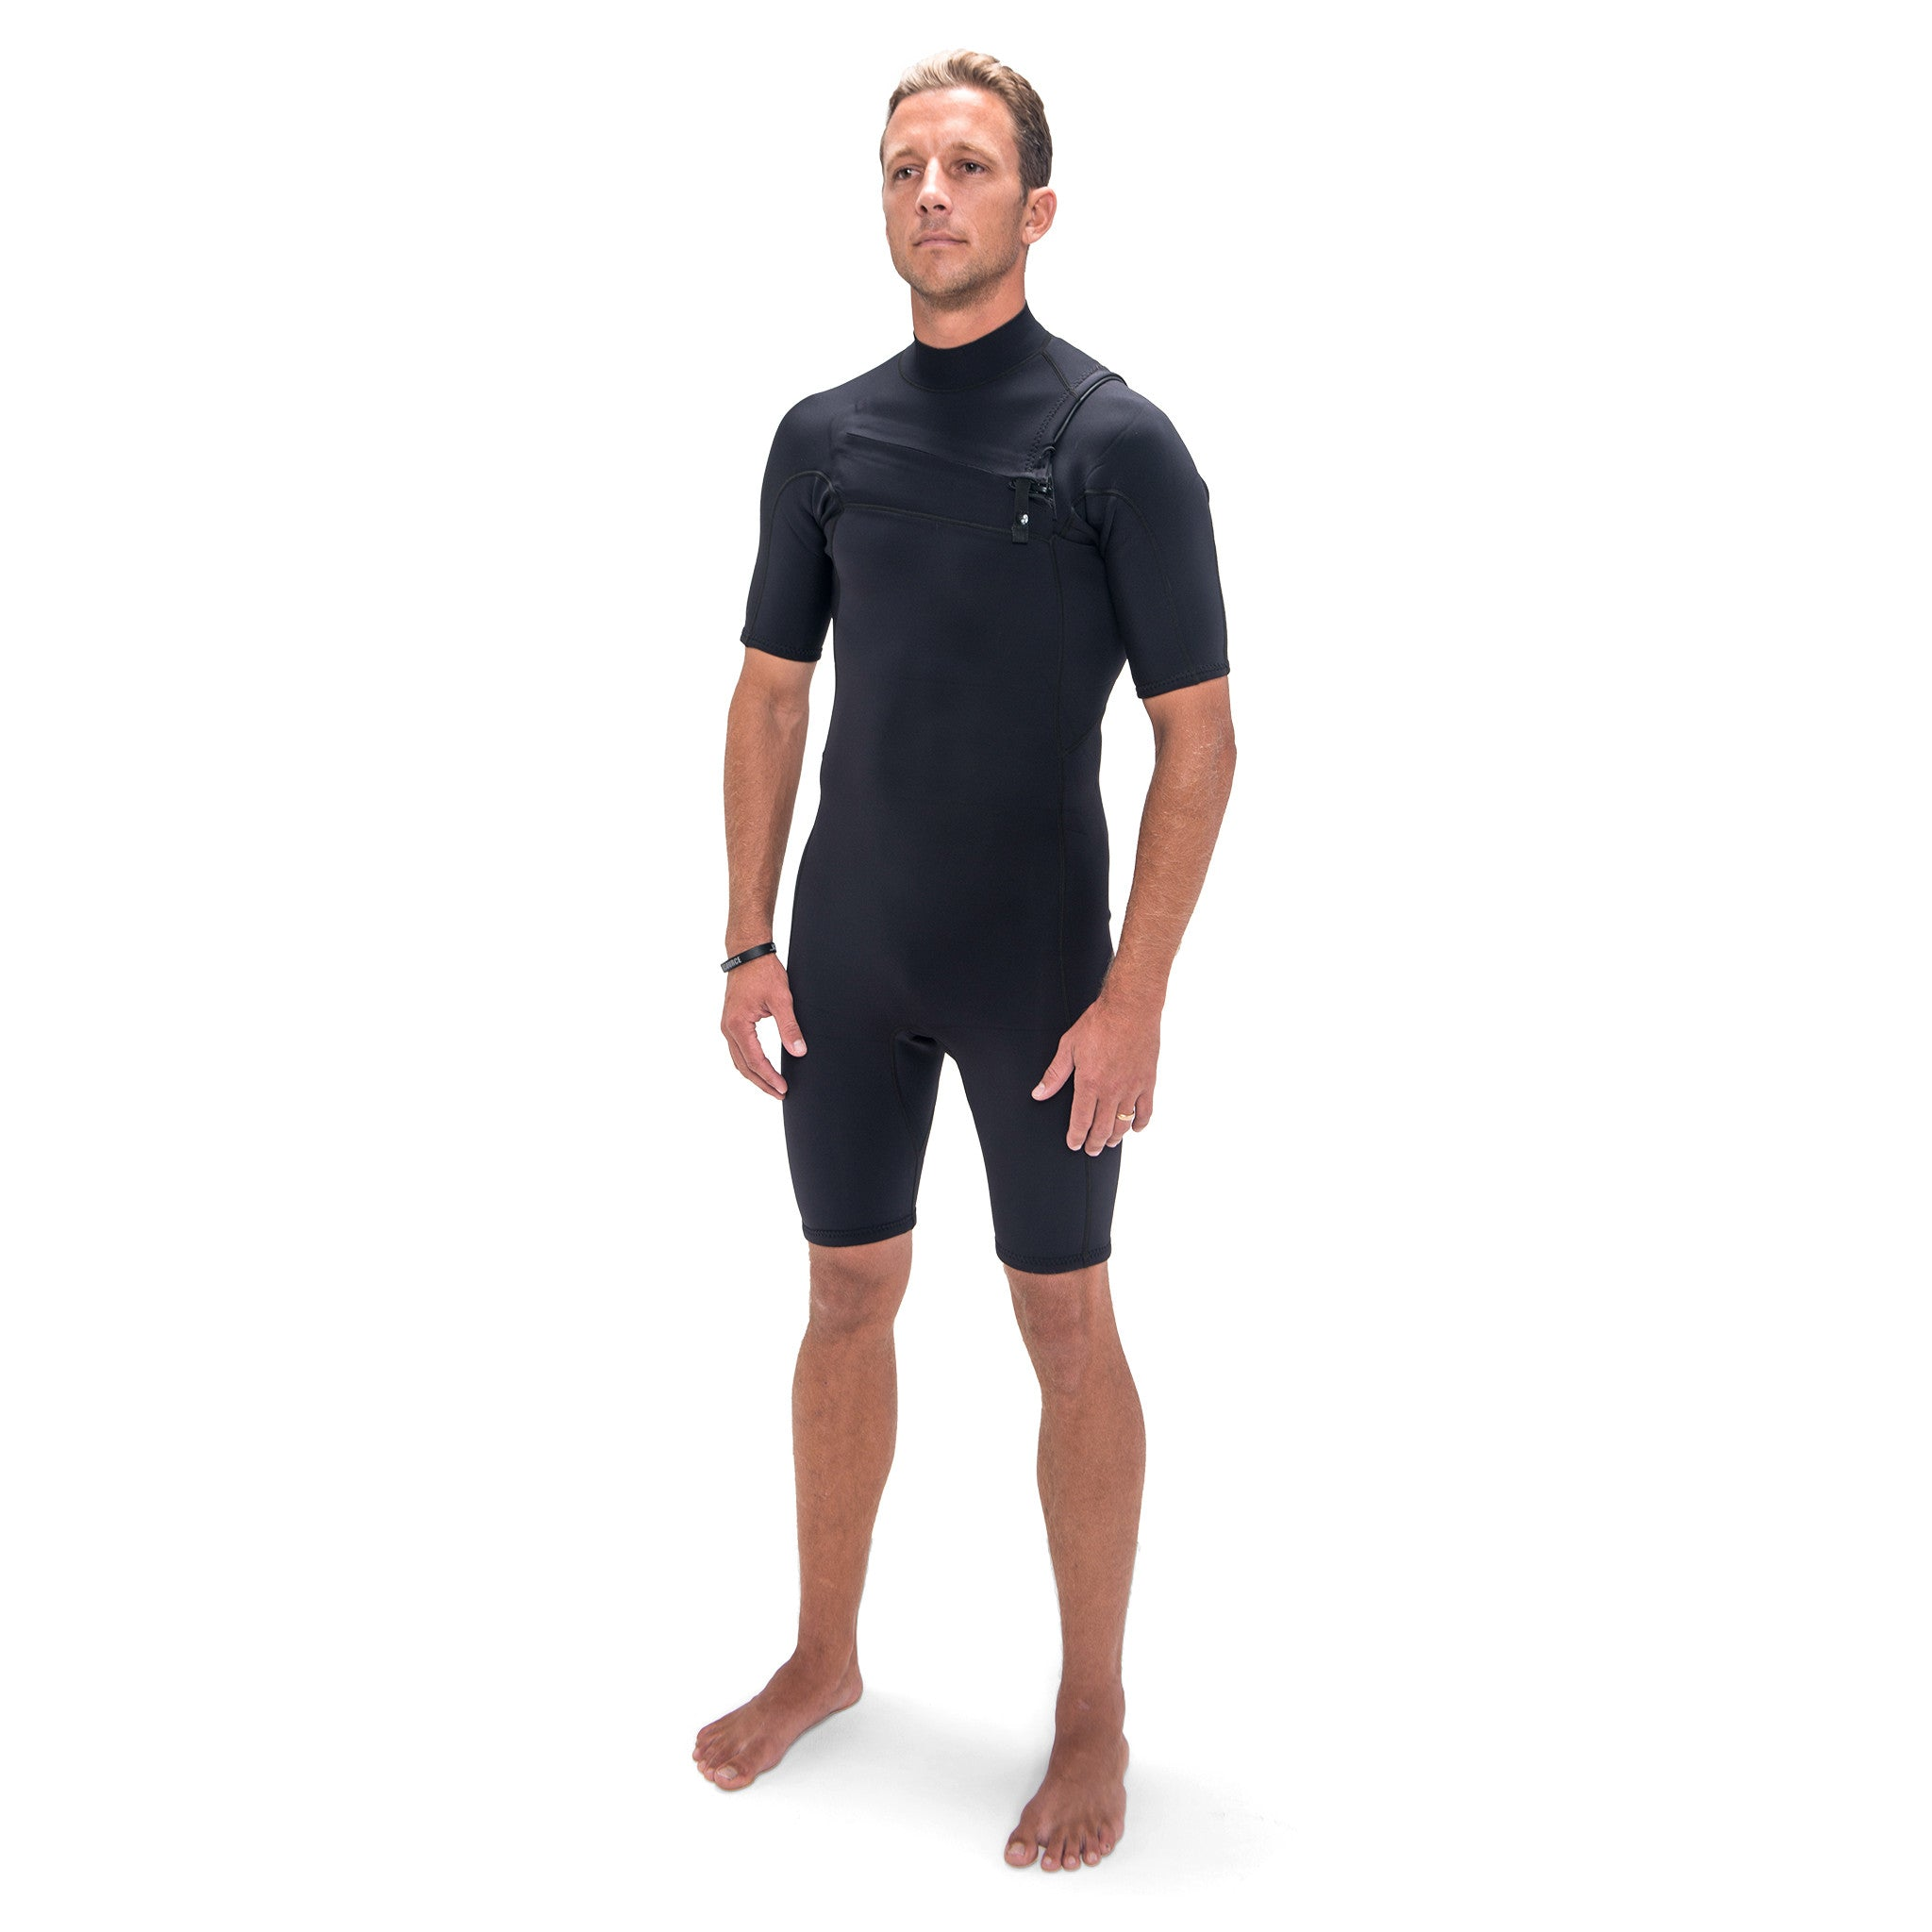 Groundswell Supply Custom Made Wetsuit (Spring Suit) 1